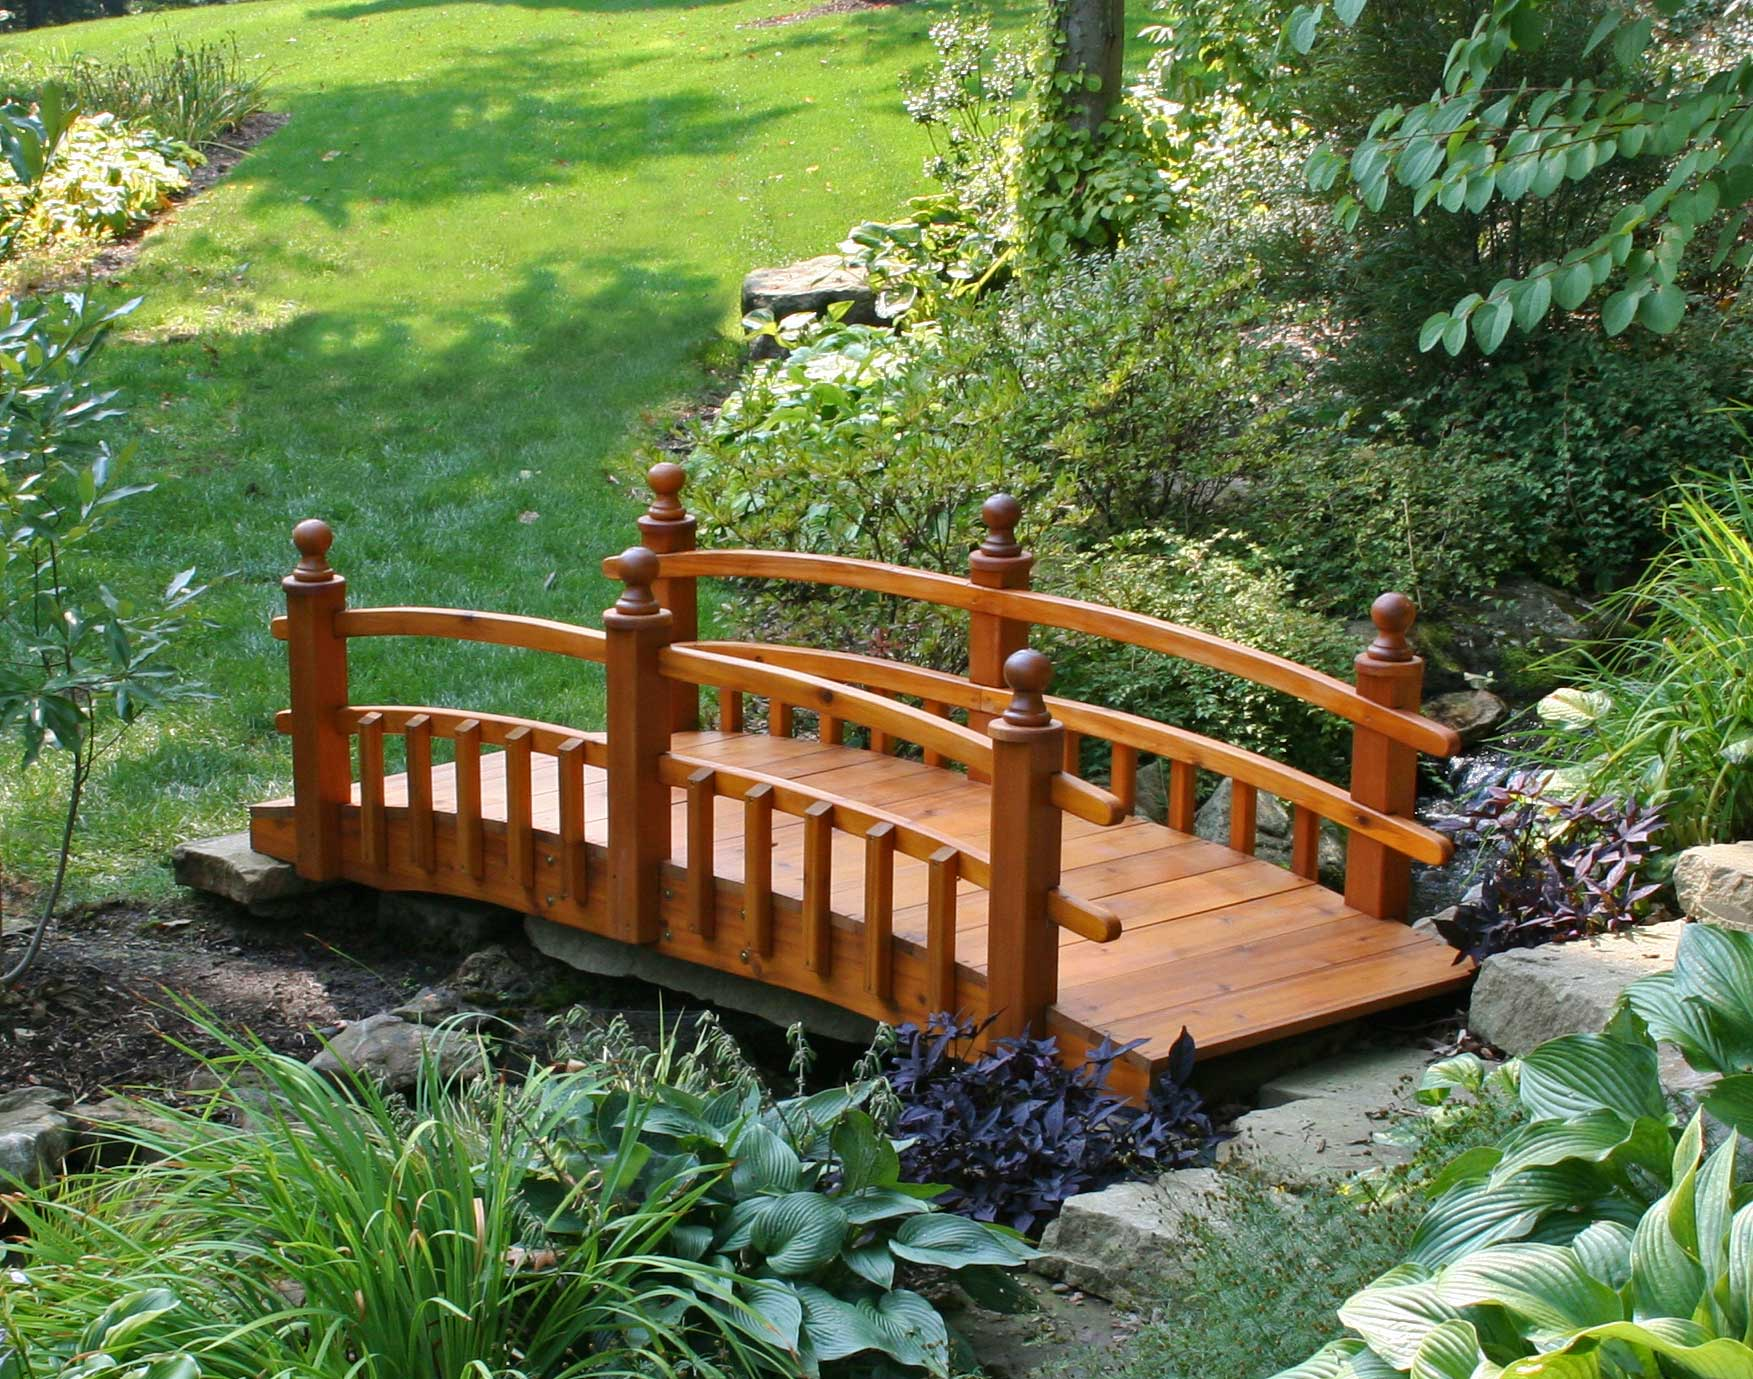 Best Wood To Make Painted Furniture